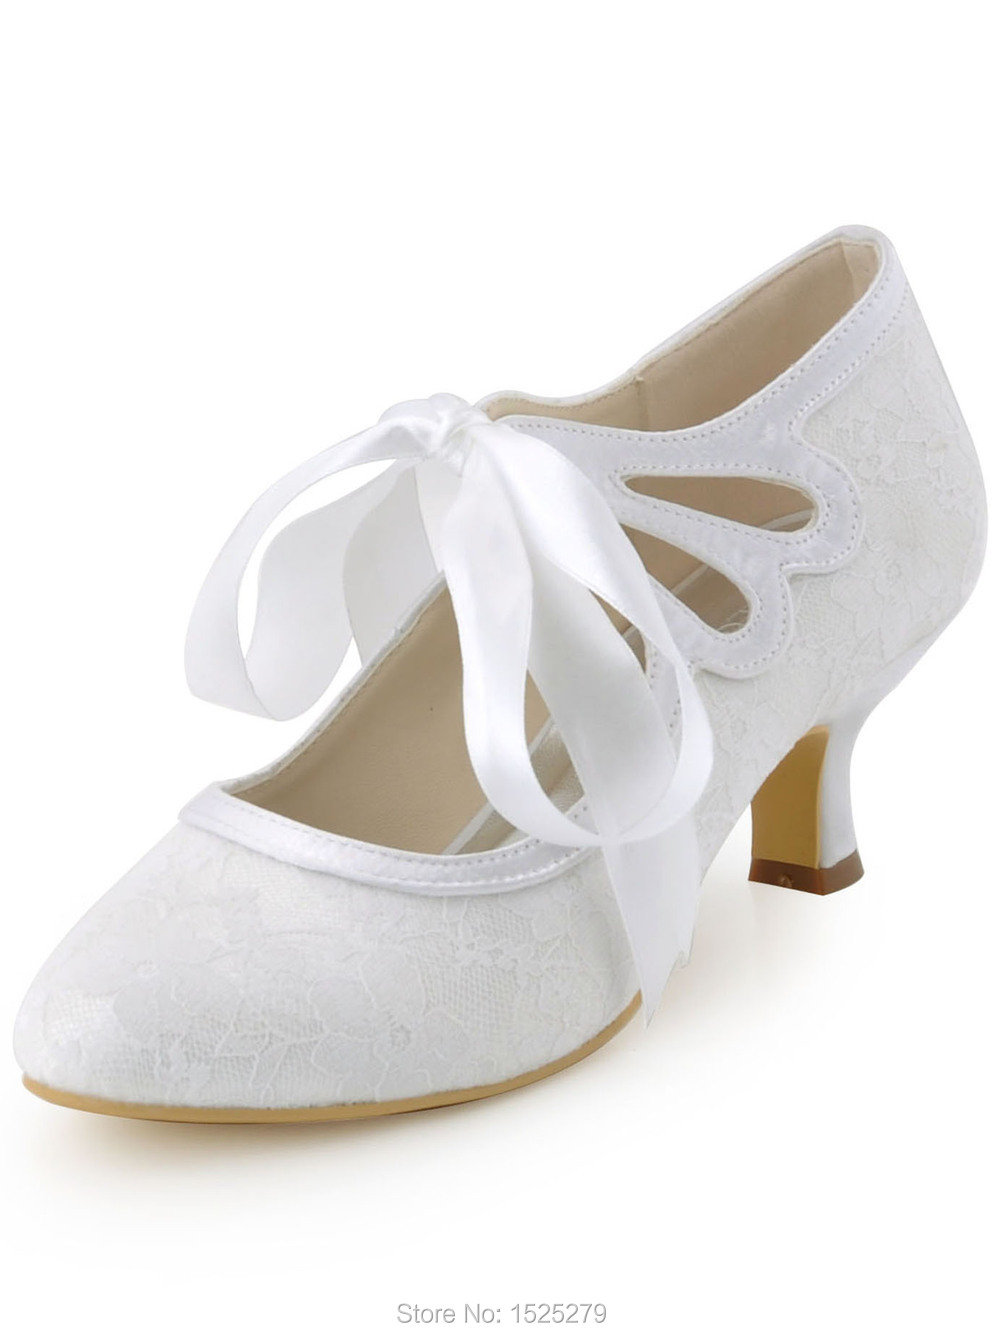 How To Dye White Leather Shoes Ivory